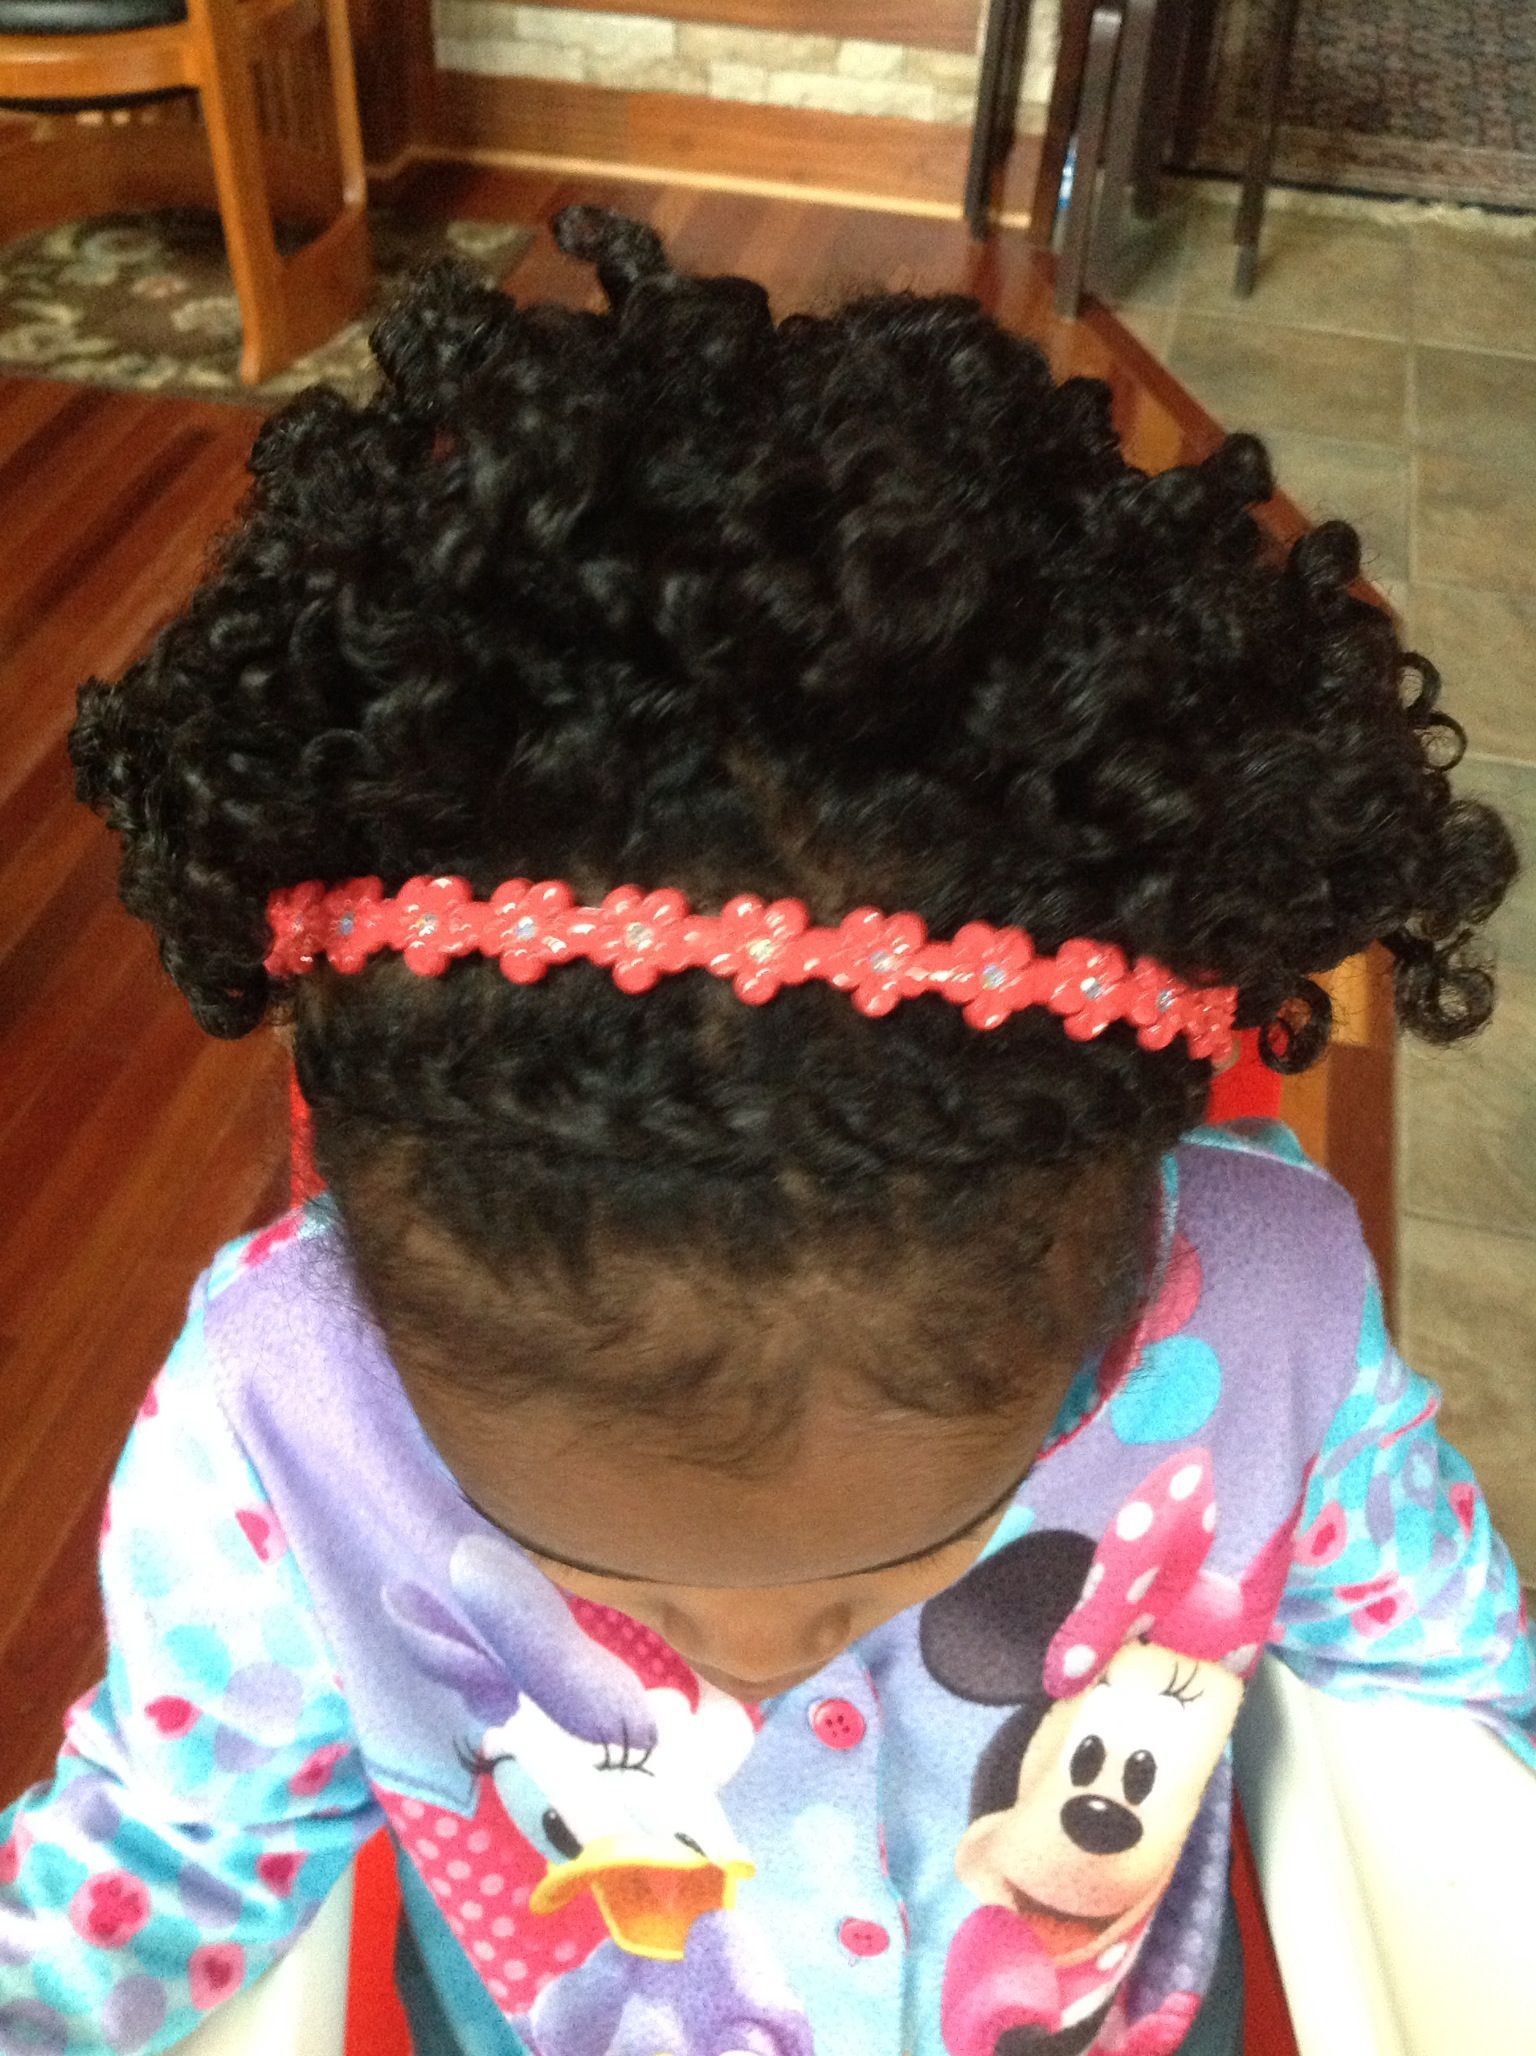 Cute hairstyles for kids hairstyleforblackwomen.net 162